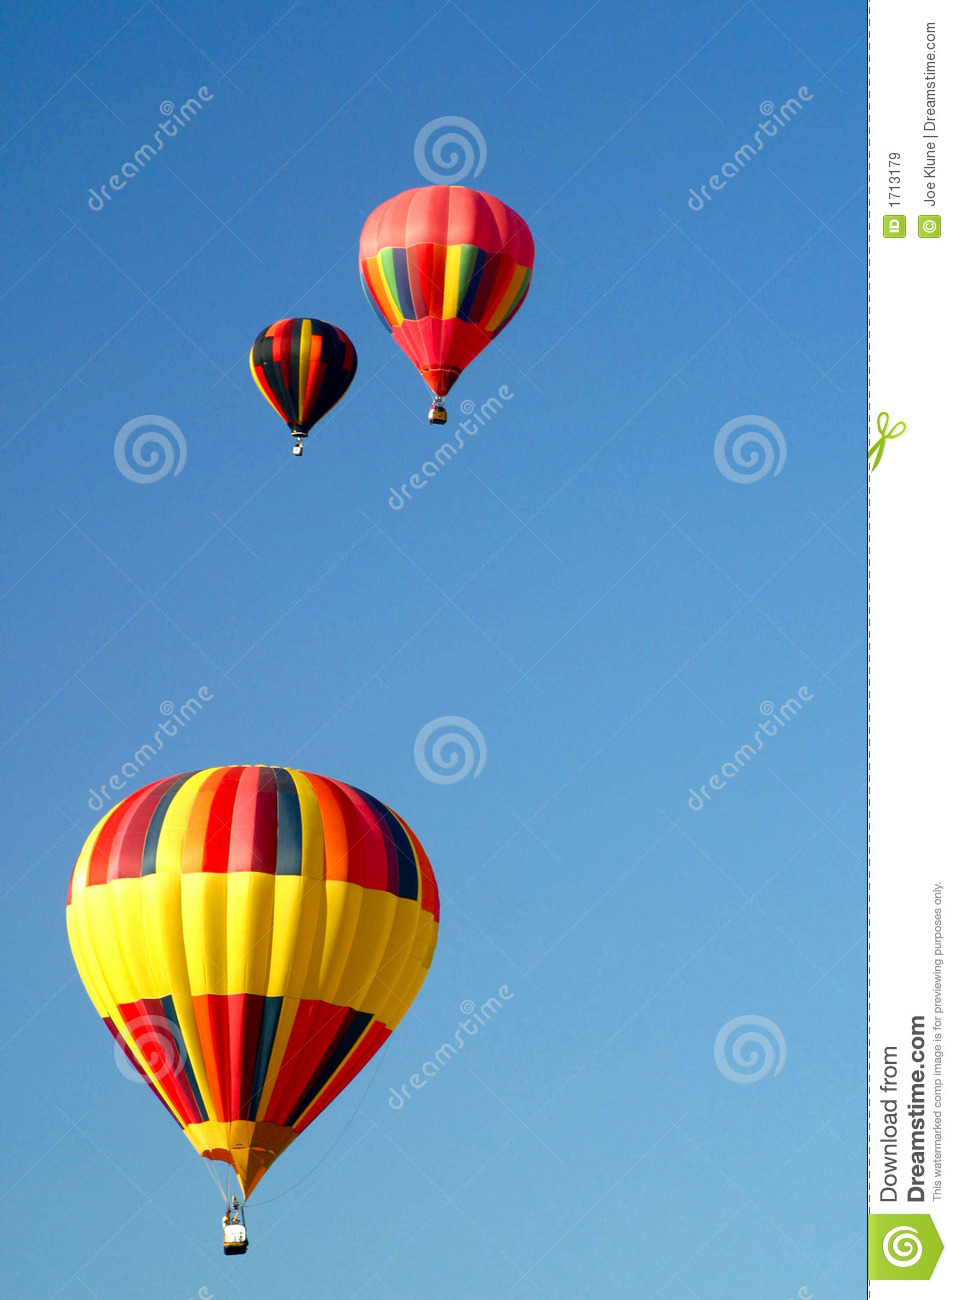 Hot Air Balloons In The Sky Royalty Free Stock Images ...